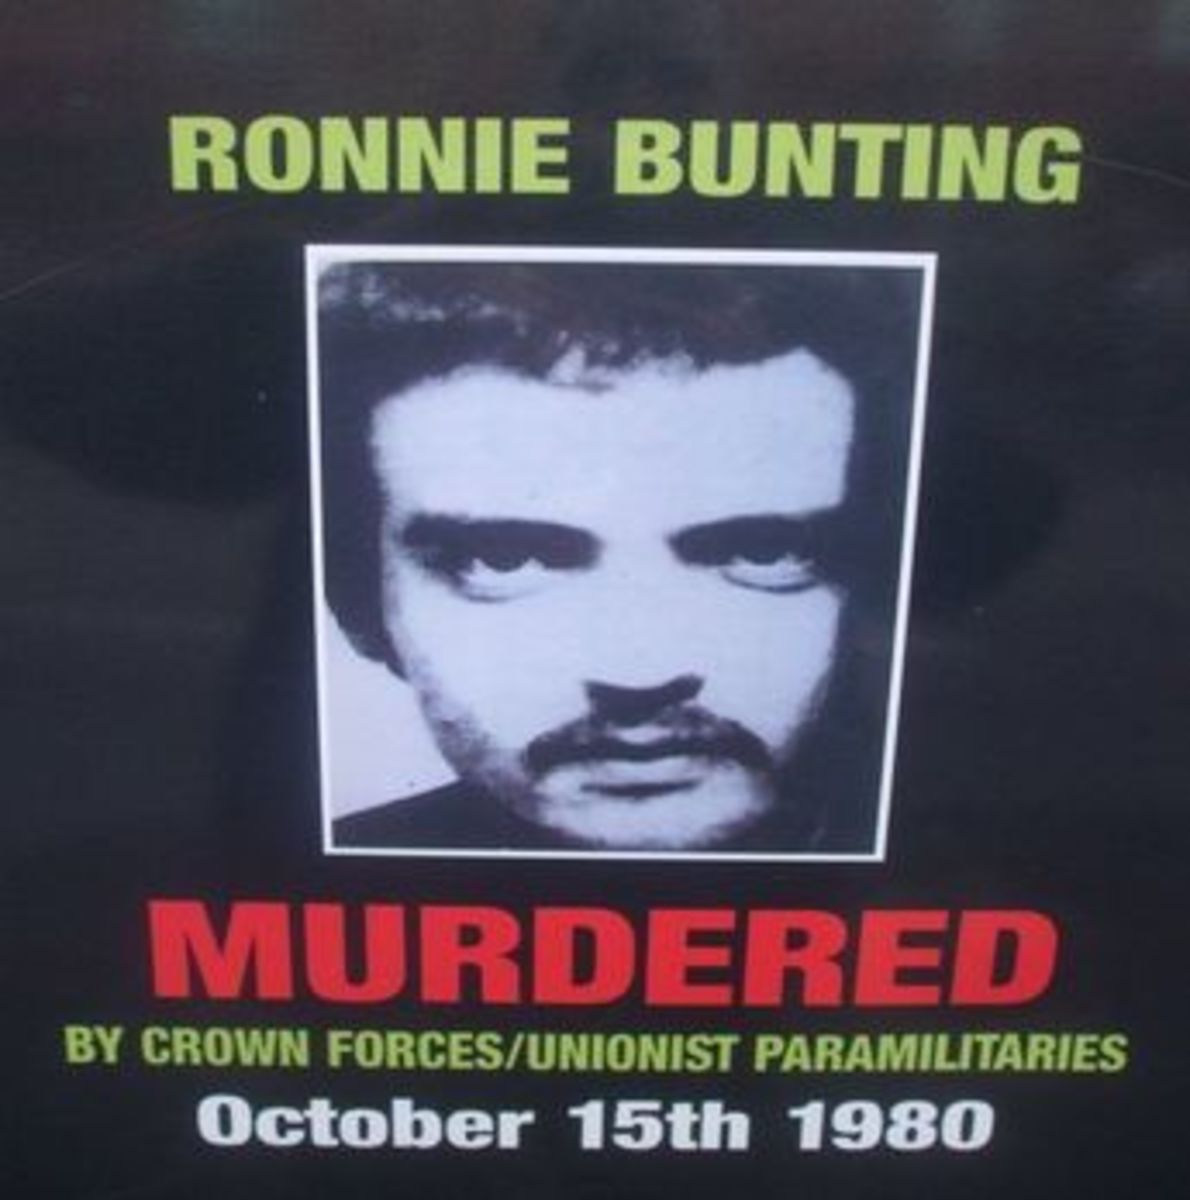 Ronnie Bunting Murdered Poster